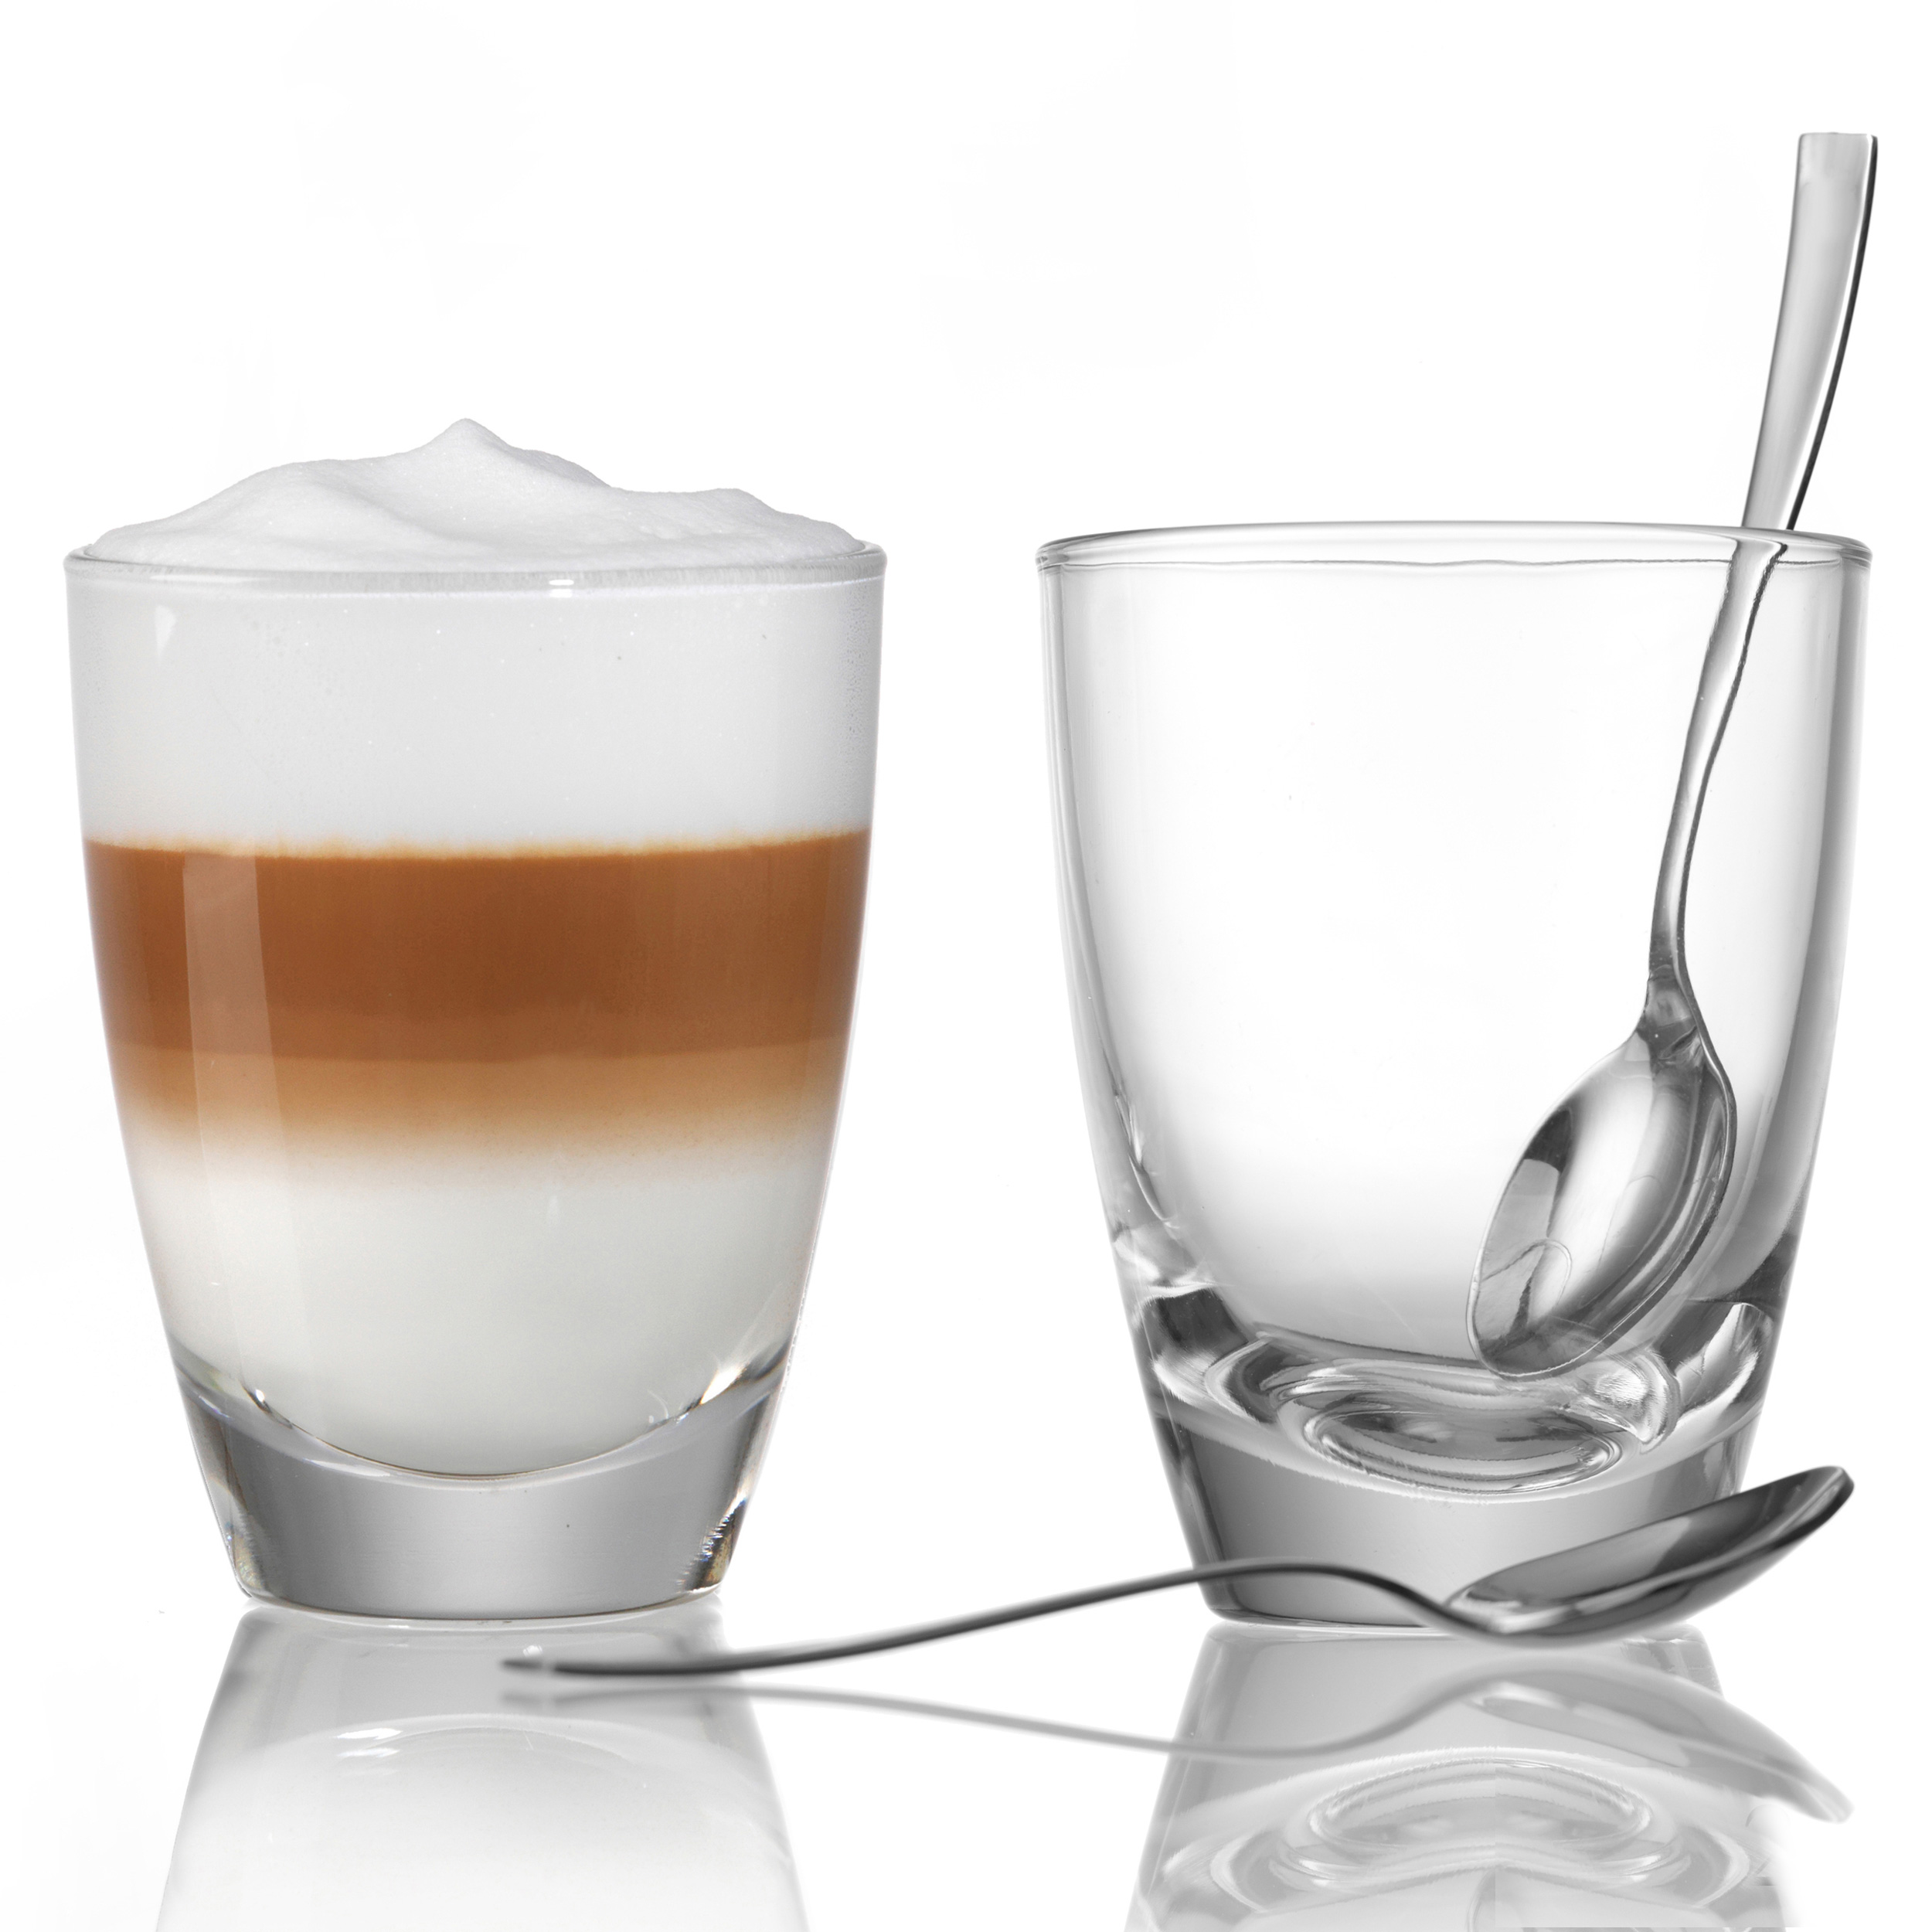 ritzenhoff breker gondola latte macchiato glass set of 2 transparent glass at about shop. Black Bedroom Furniture Sets. Home Design Ideas